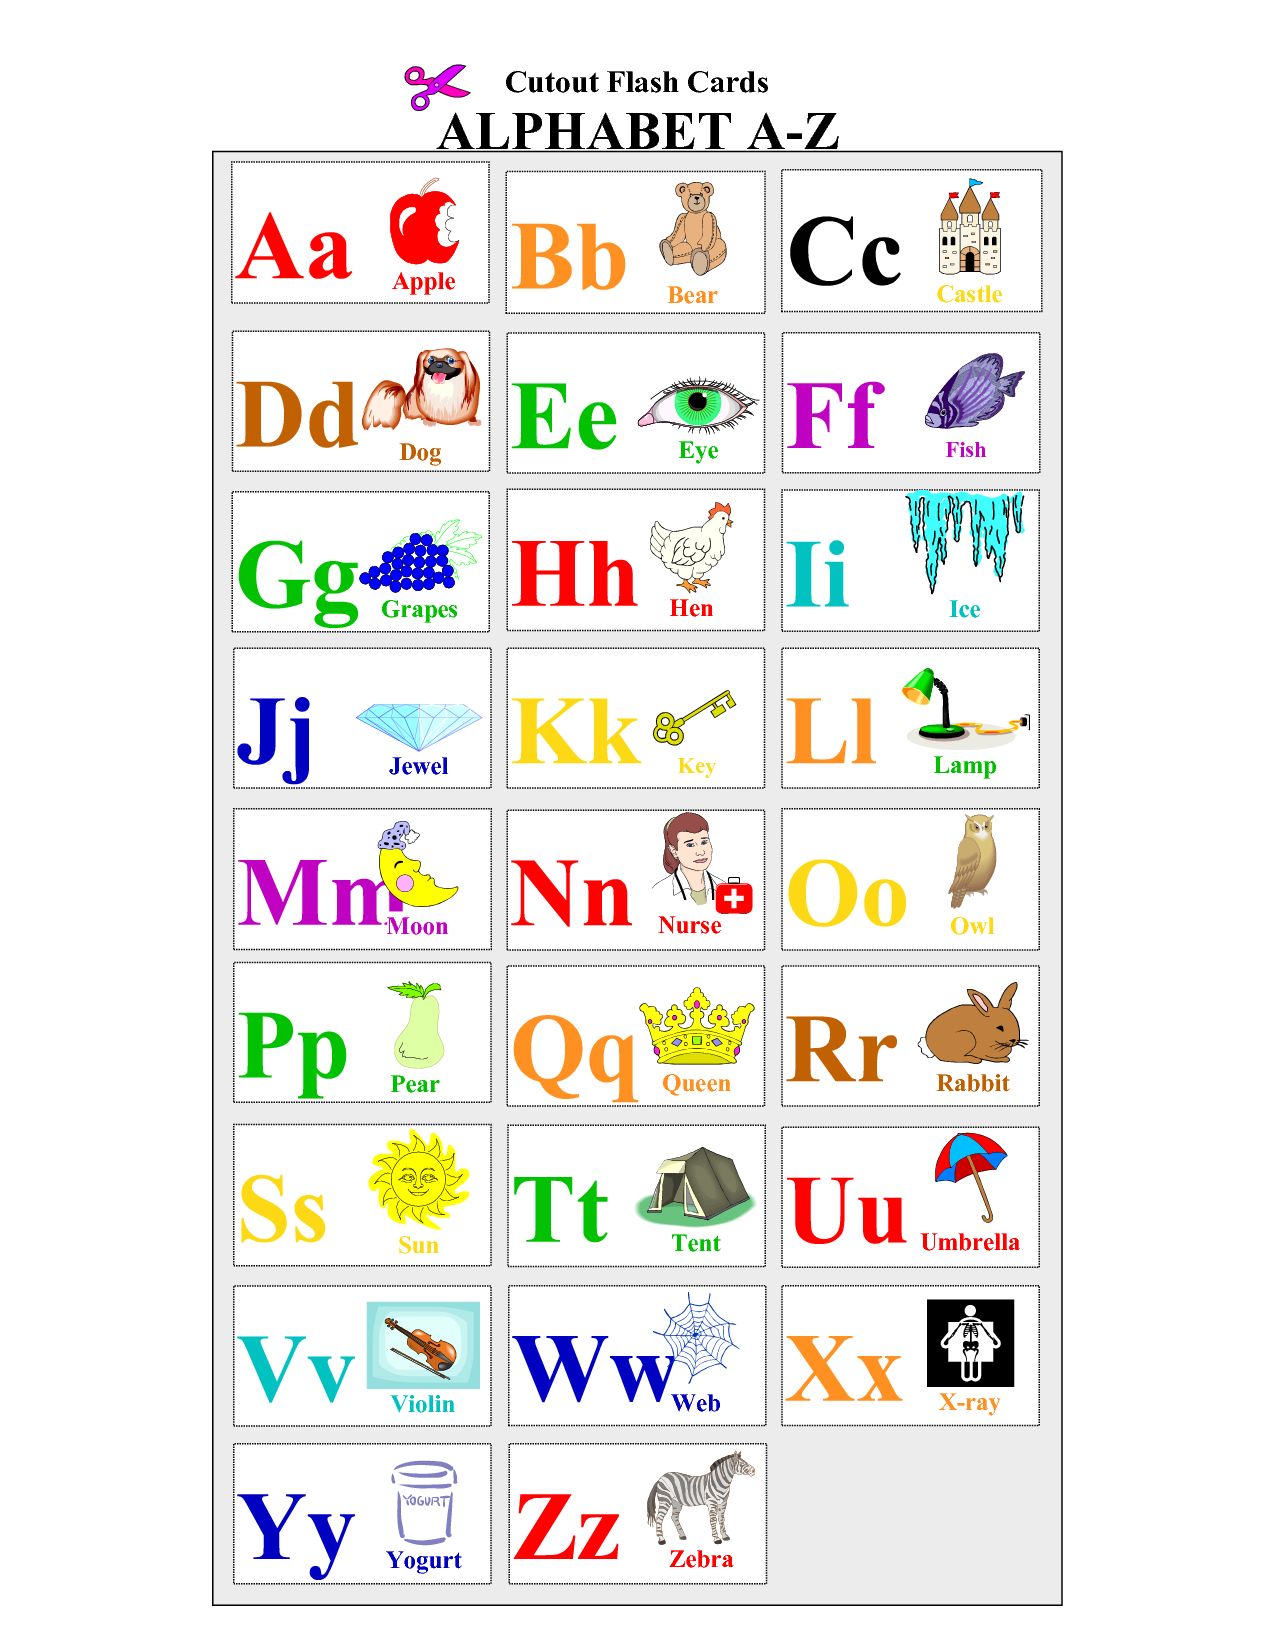 Alphabet-Flash-Cards-To-Print - Coloring Pages For Adults,coloring - Free Printable Abc Flashcards With Pictures